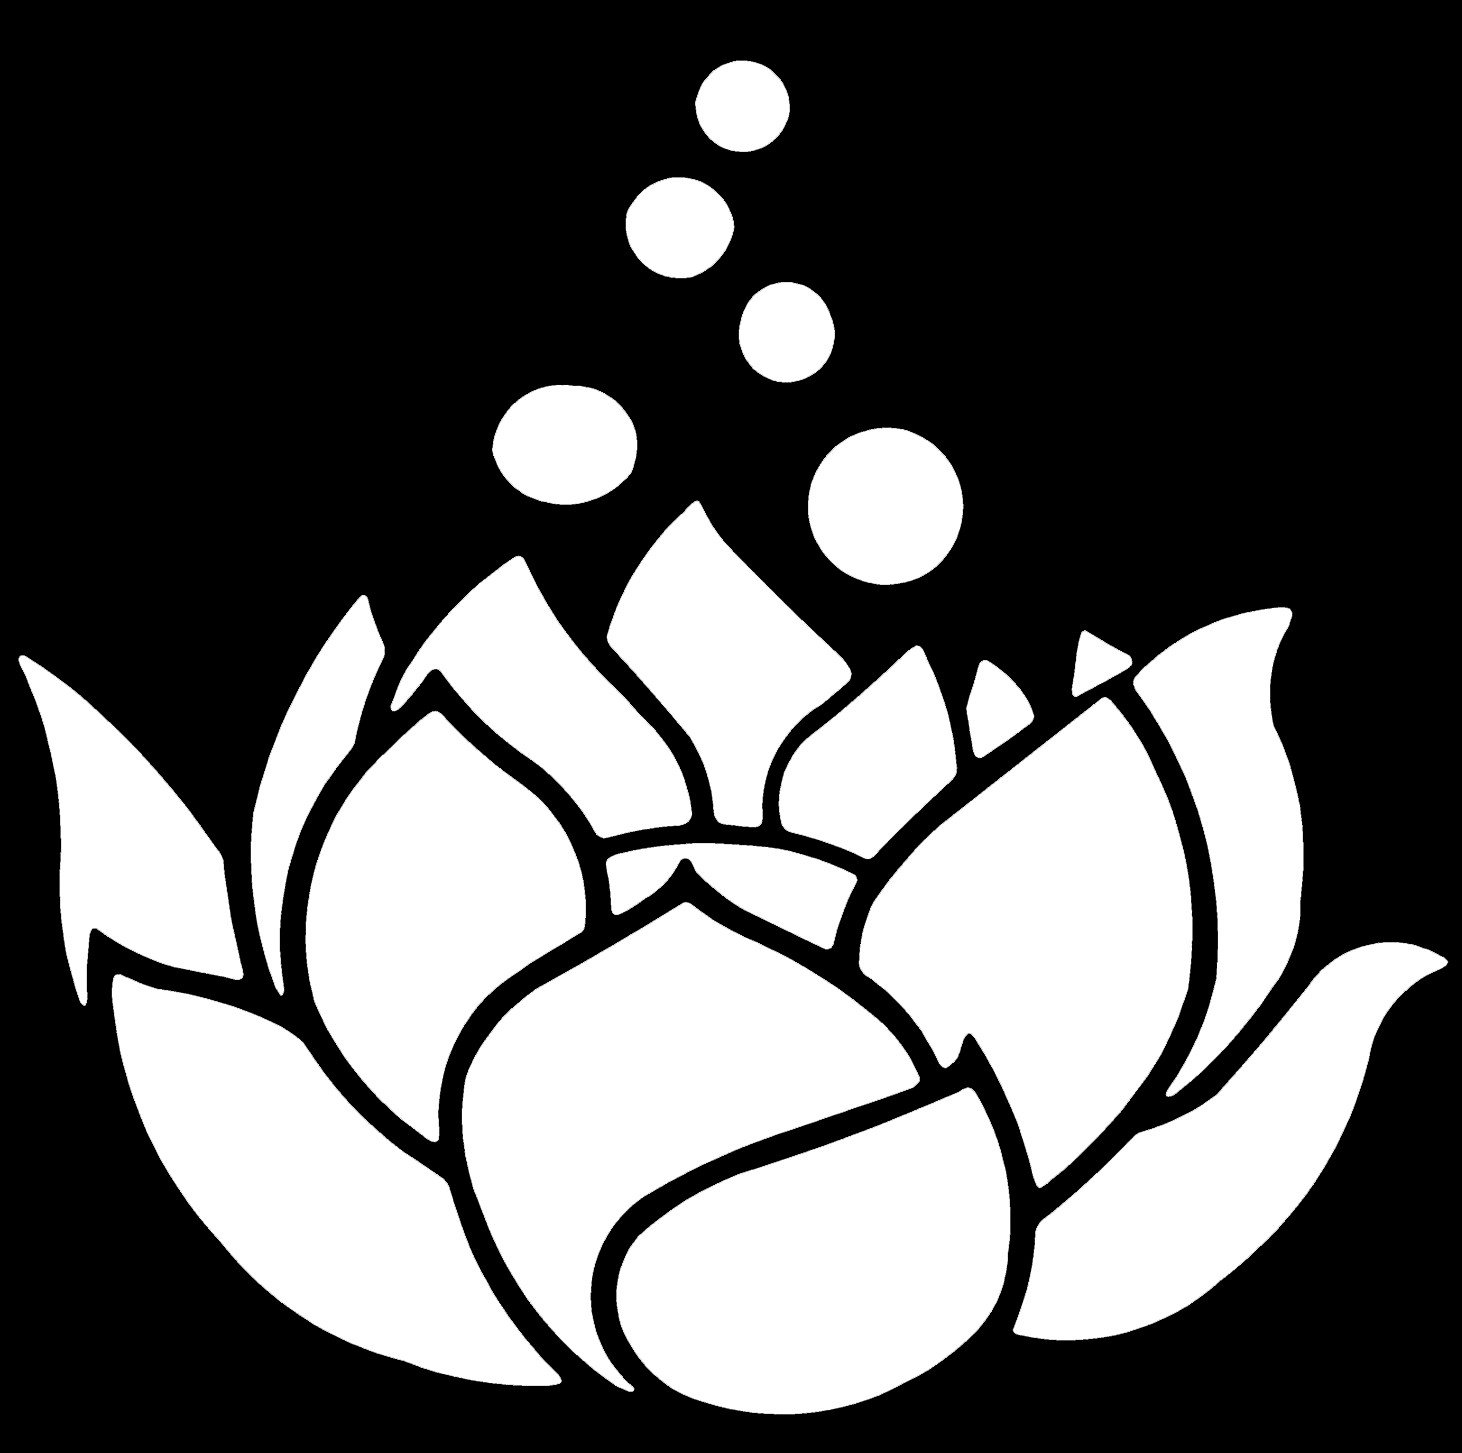 Amazon com lotus flower white 5 vinyl sticker decal for cars truckscomputersnotebooks etc automotive